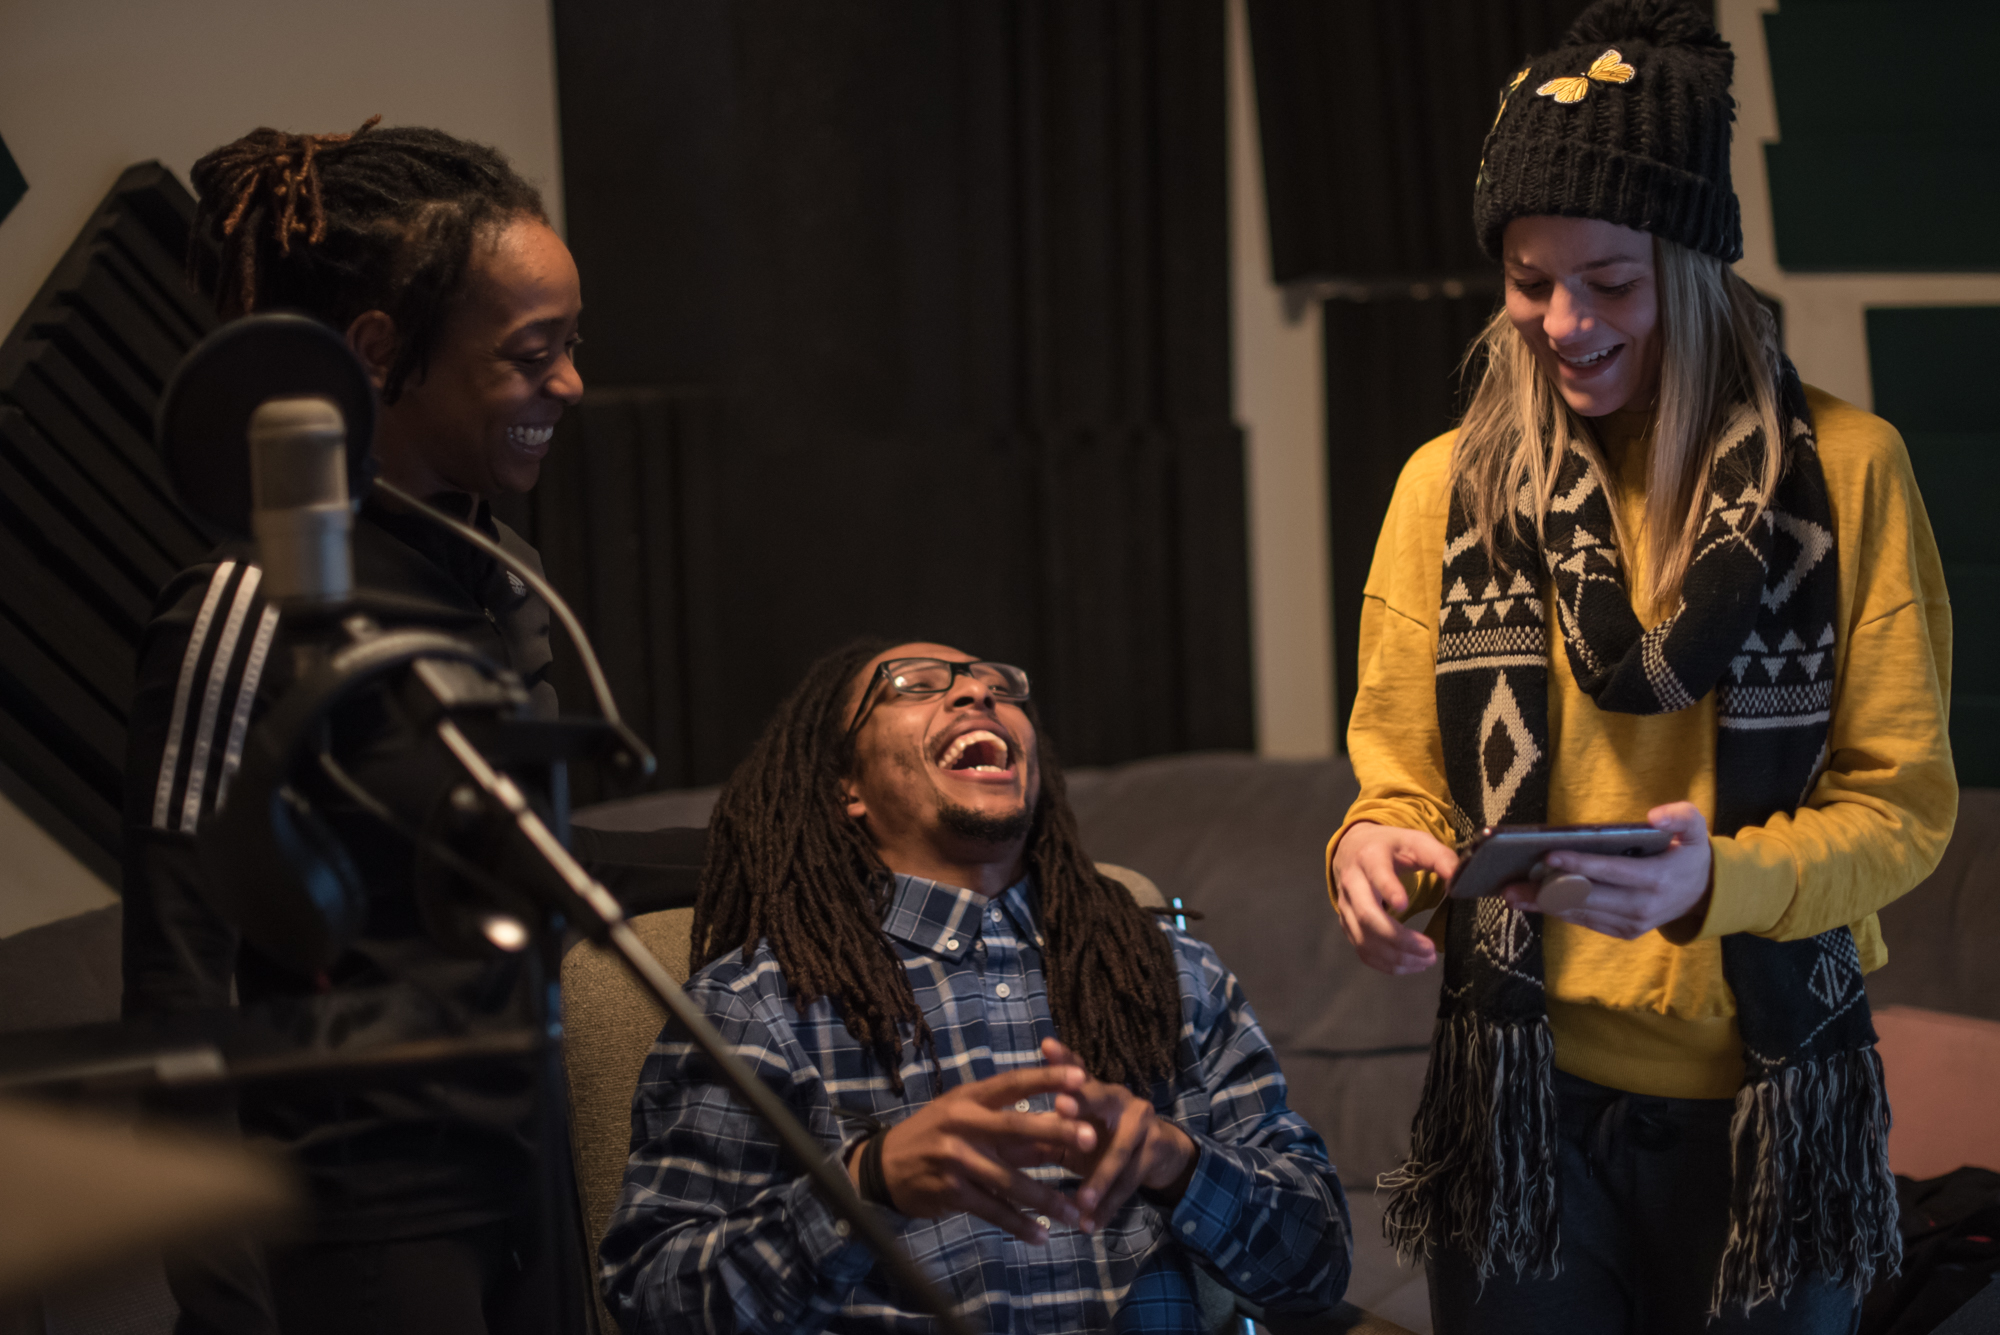 """Porscha Spells, Elijah Motley and Jessica Deahr at Heart and Soul, Chicago, during recording for the score design by Jessica Deahr and Johnny Nevin for Chicago Dance Crash's """"Lil Pine Nut"""" (Photo by Johnny Nevin)"""